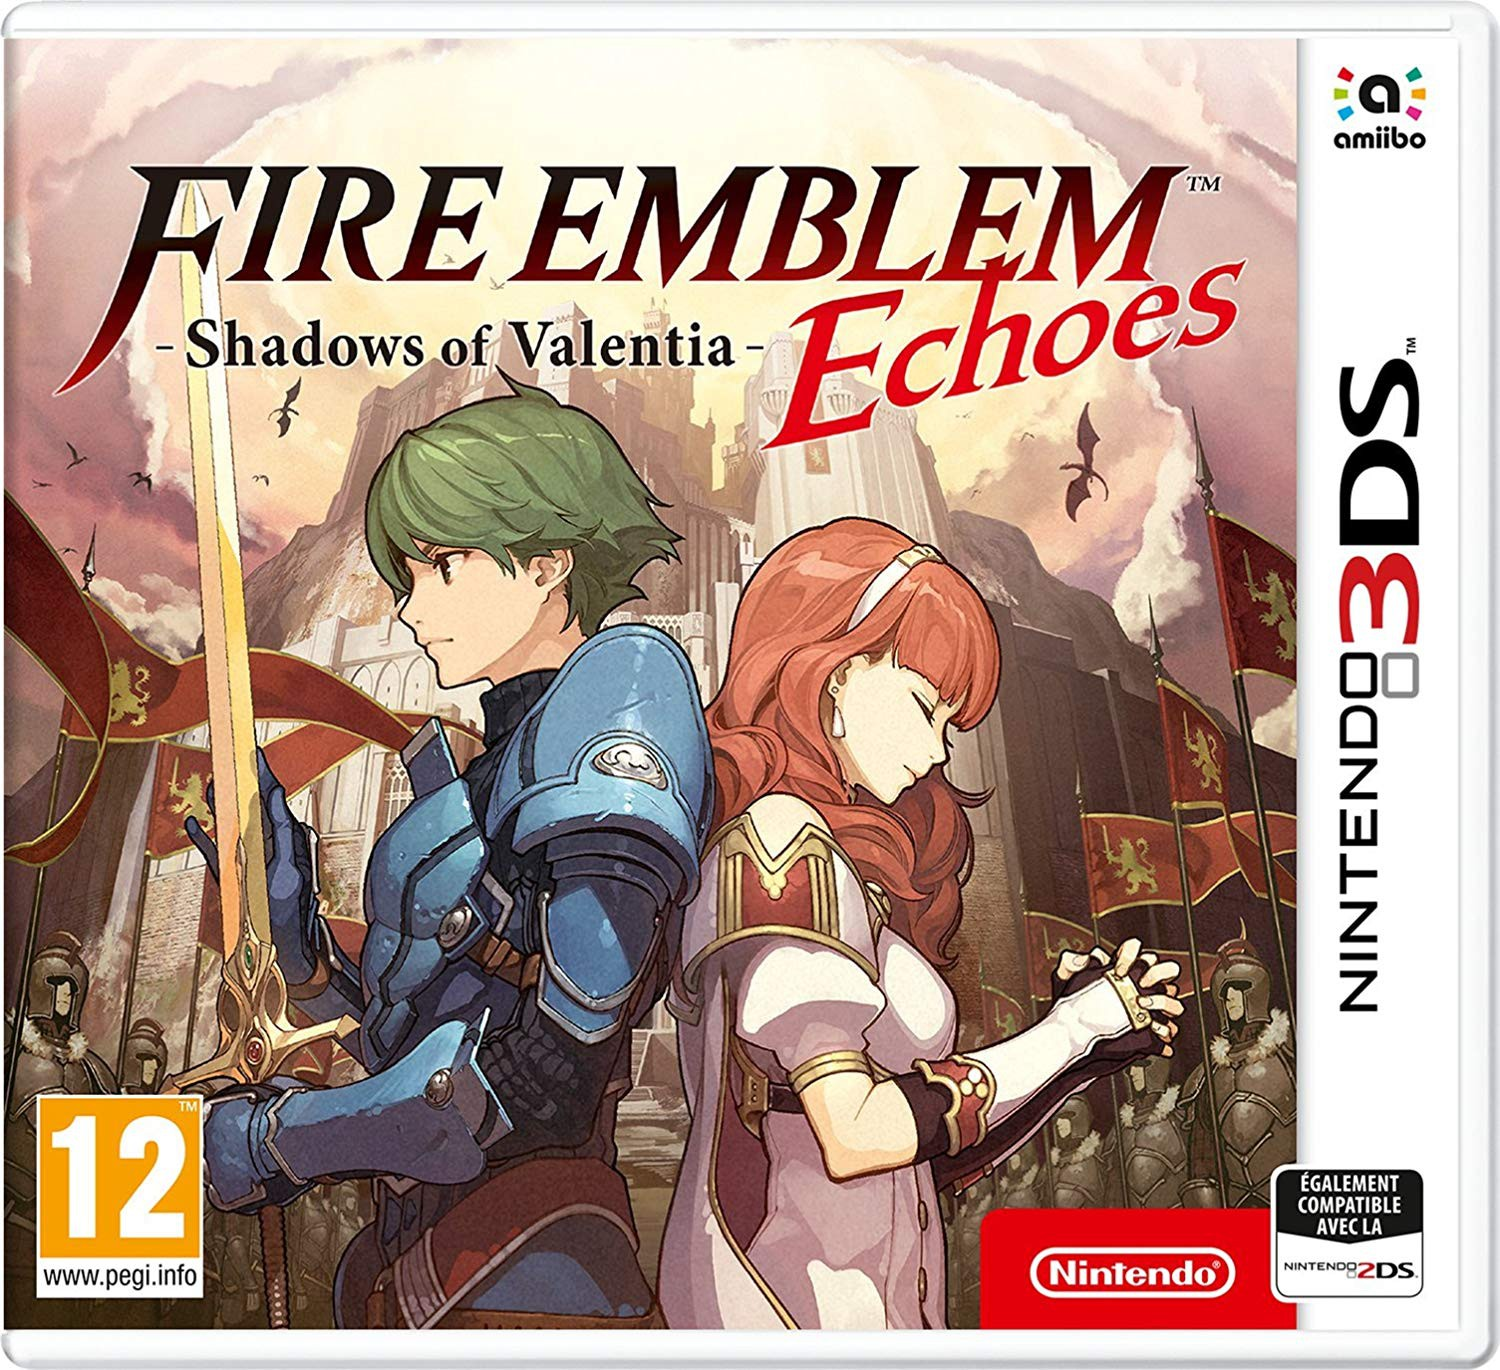 Fire Emblem: Shadows of Valentia - Echoes